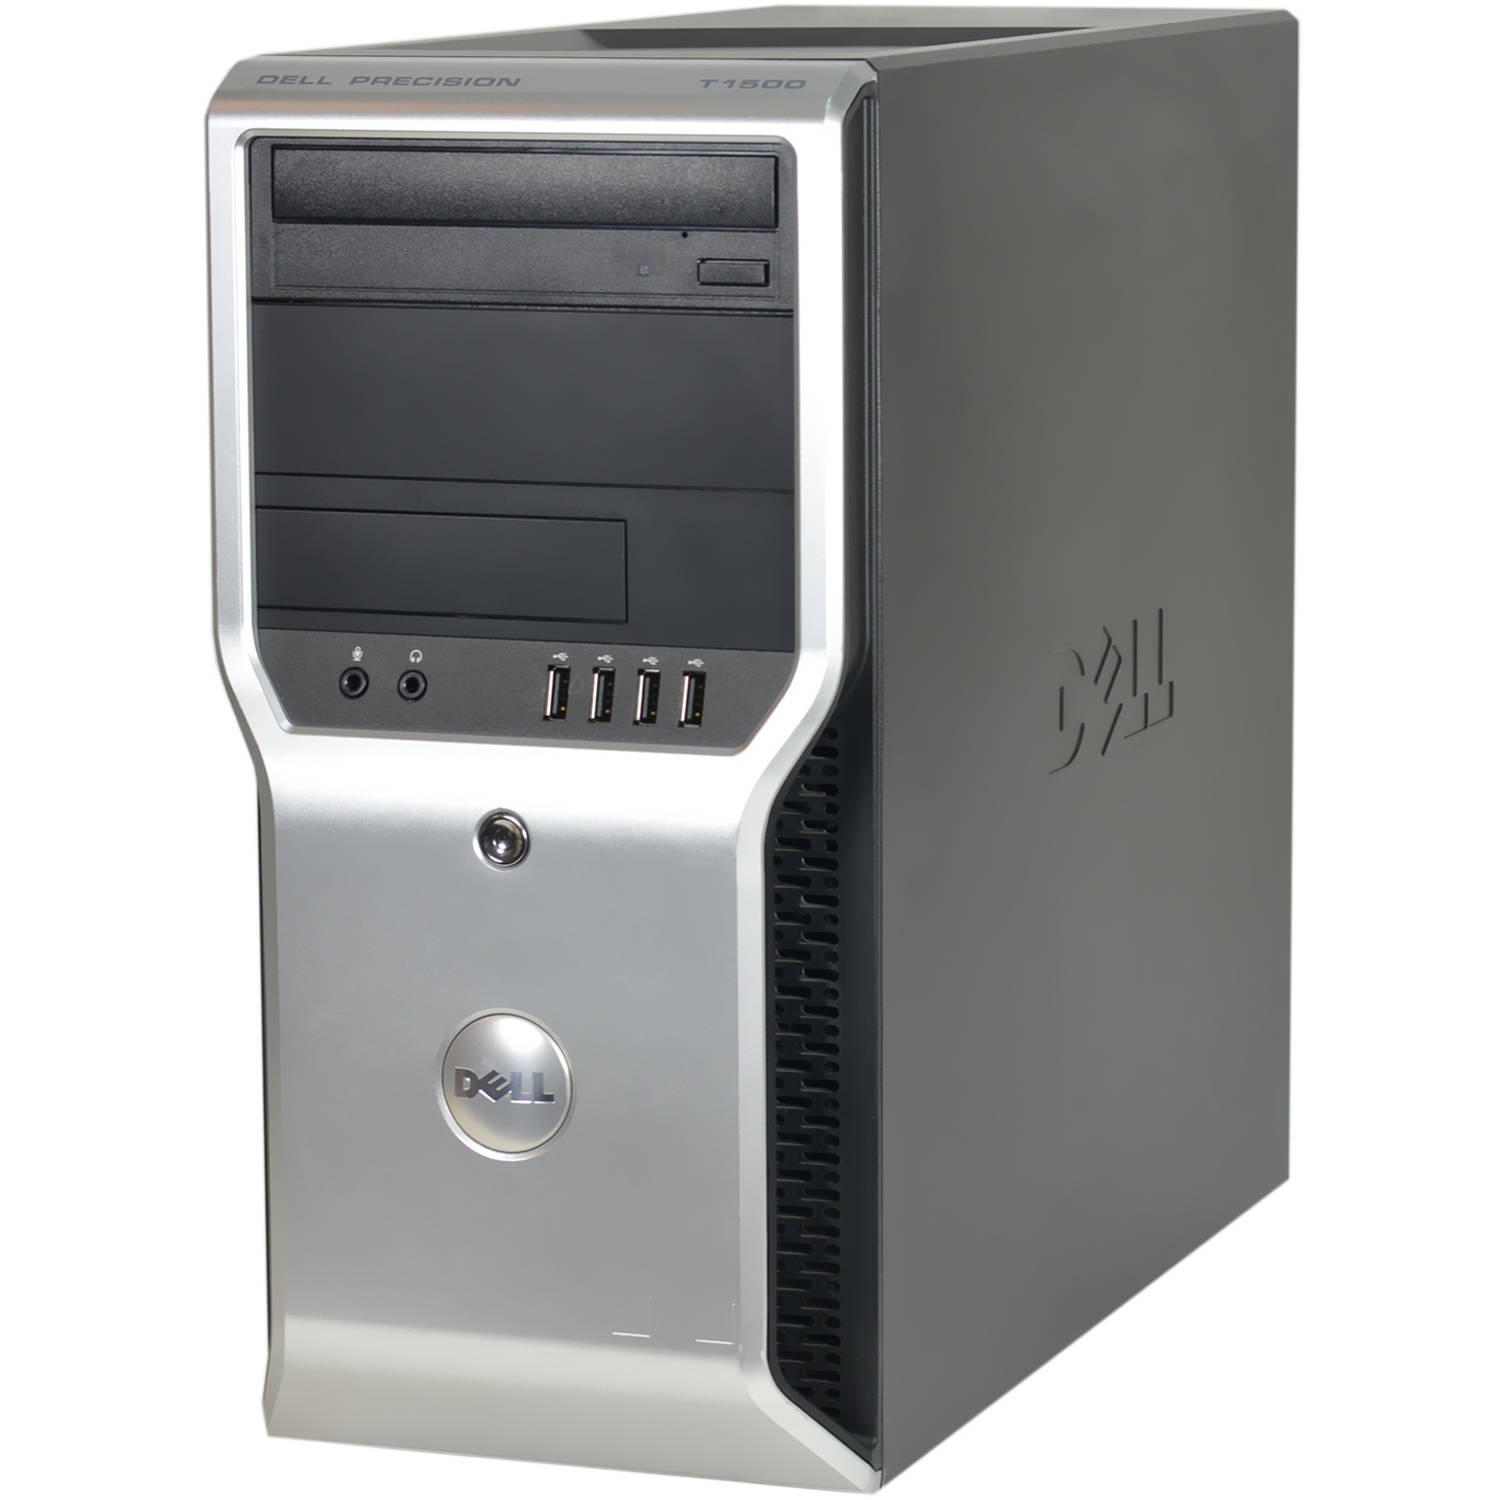 Refurbished Dell Precision T1500-T WA1-0398 Desktop PC with Intel Core i7-860 Processor, 4GB Memory, 1TB Hard Drive and Windows 10 Pro (Monitor Not Included)